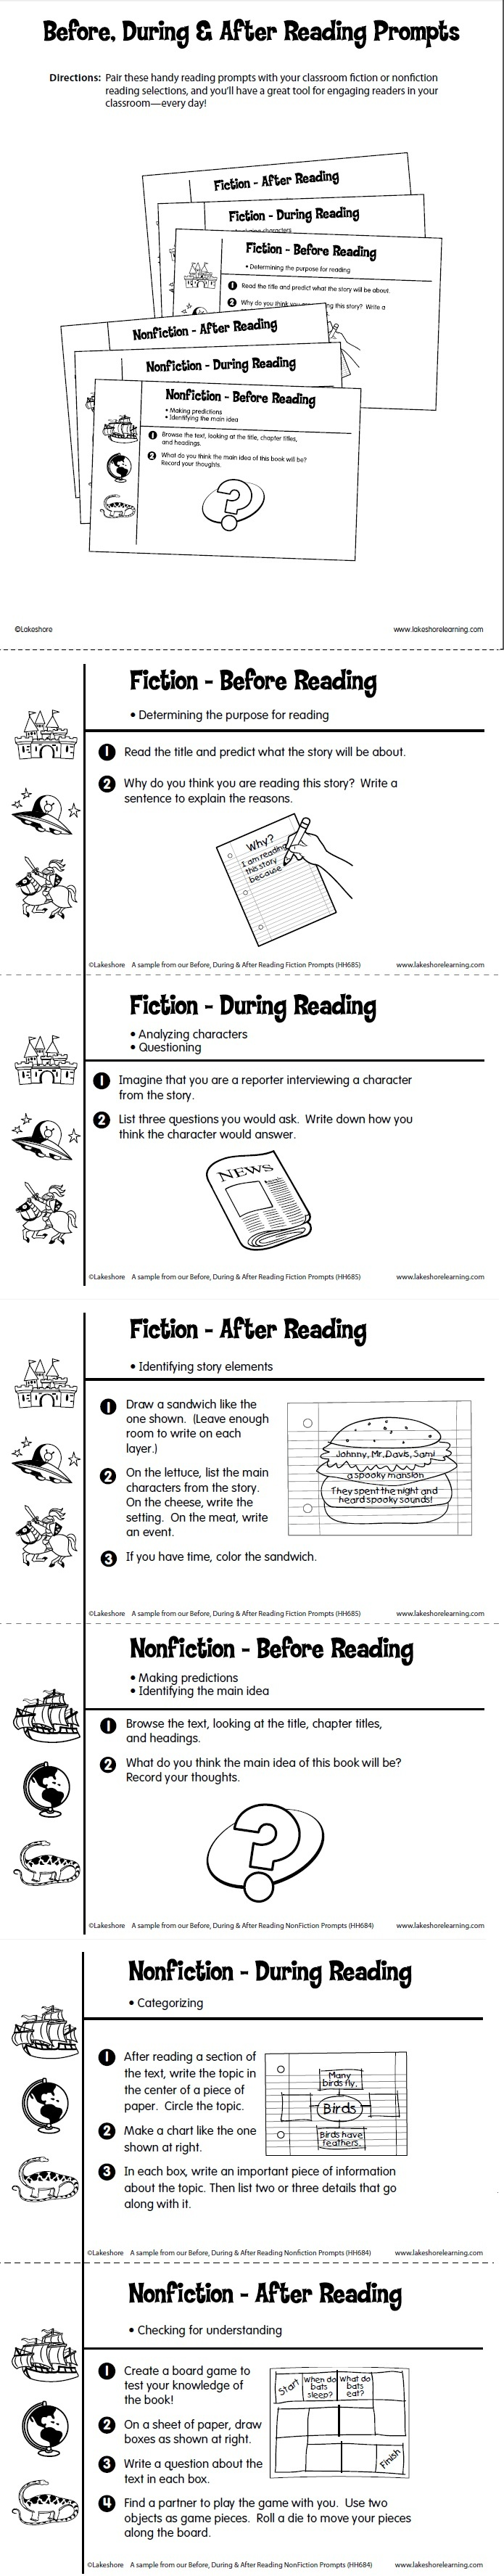 Before, During & After Reading Prompts Printable from Lakeshore Learning